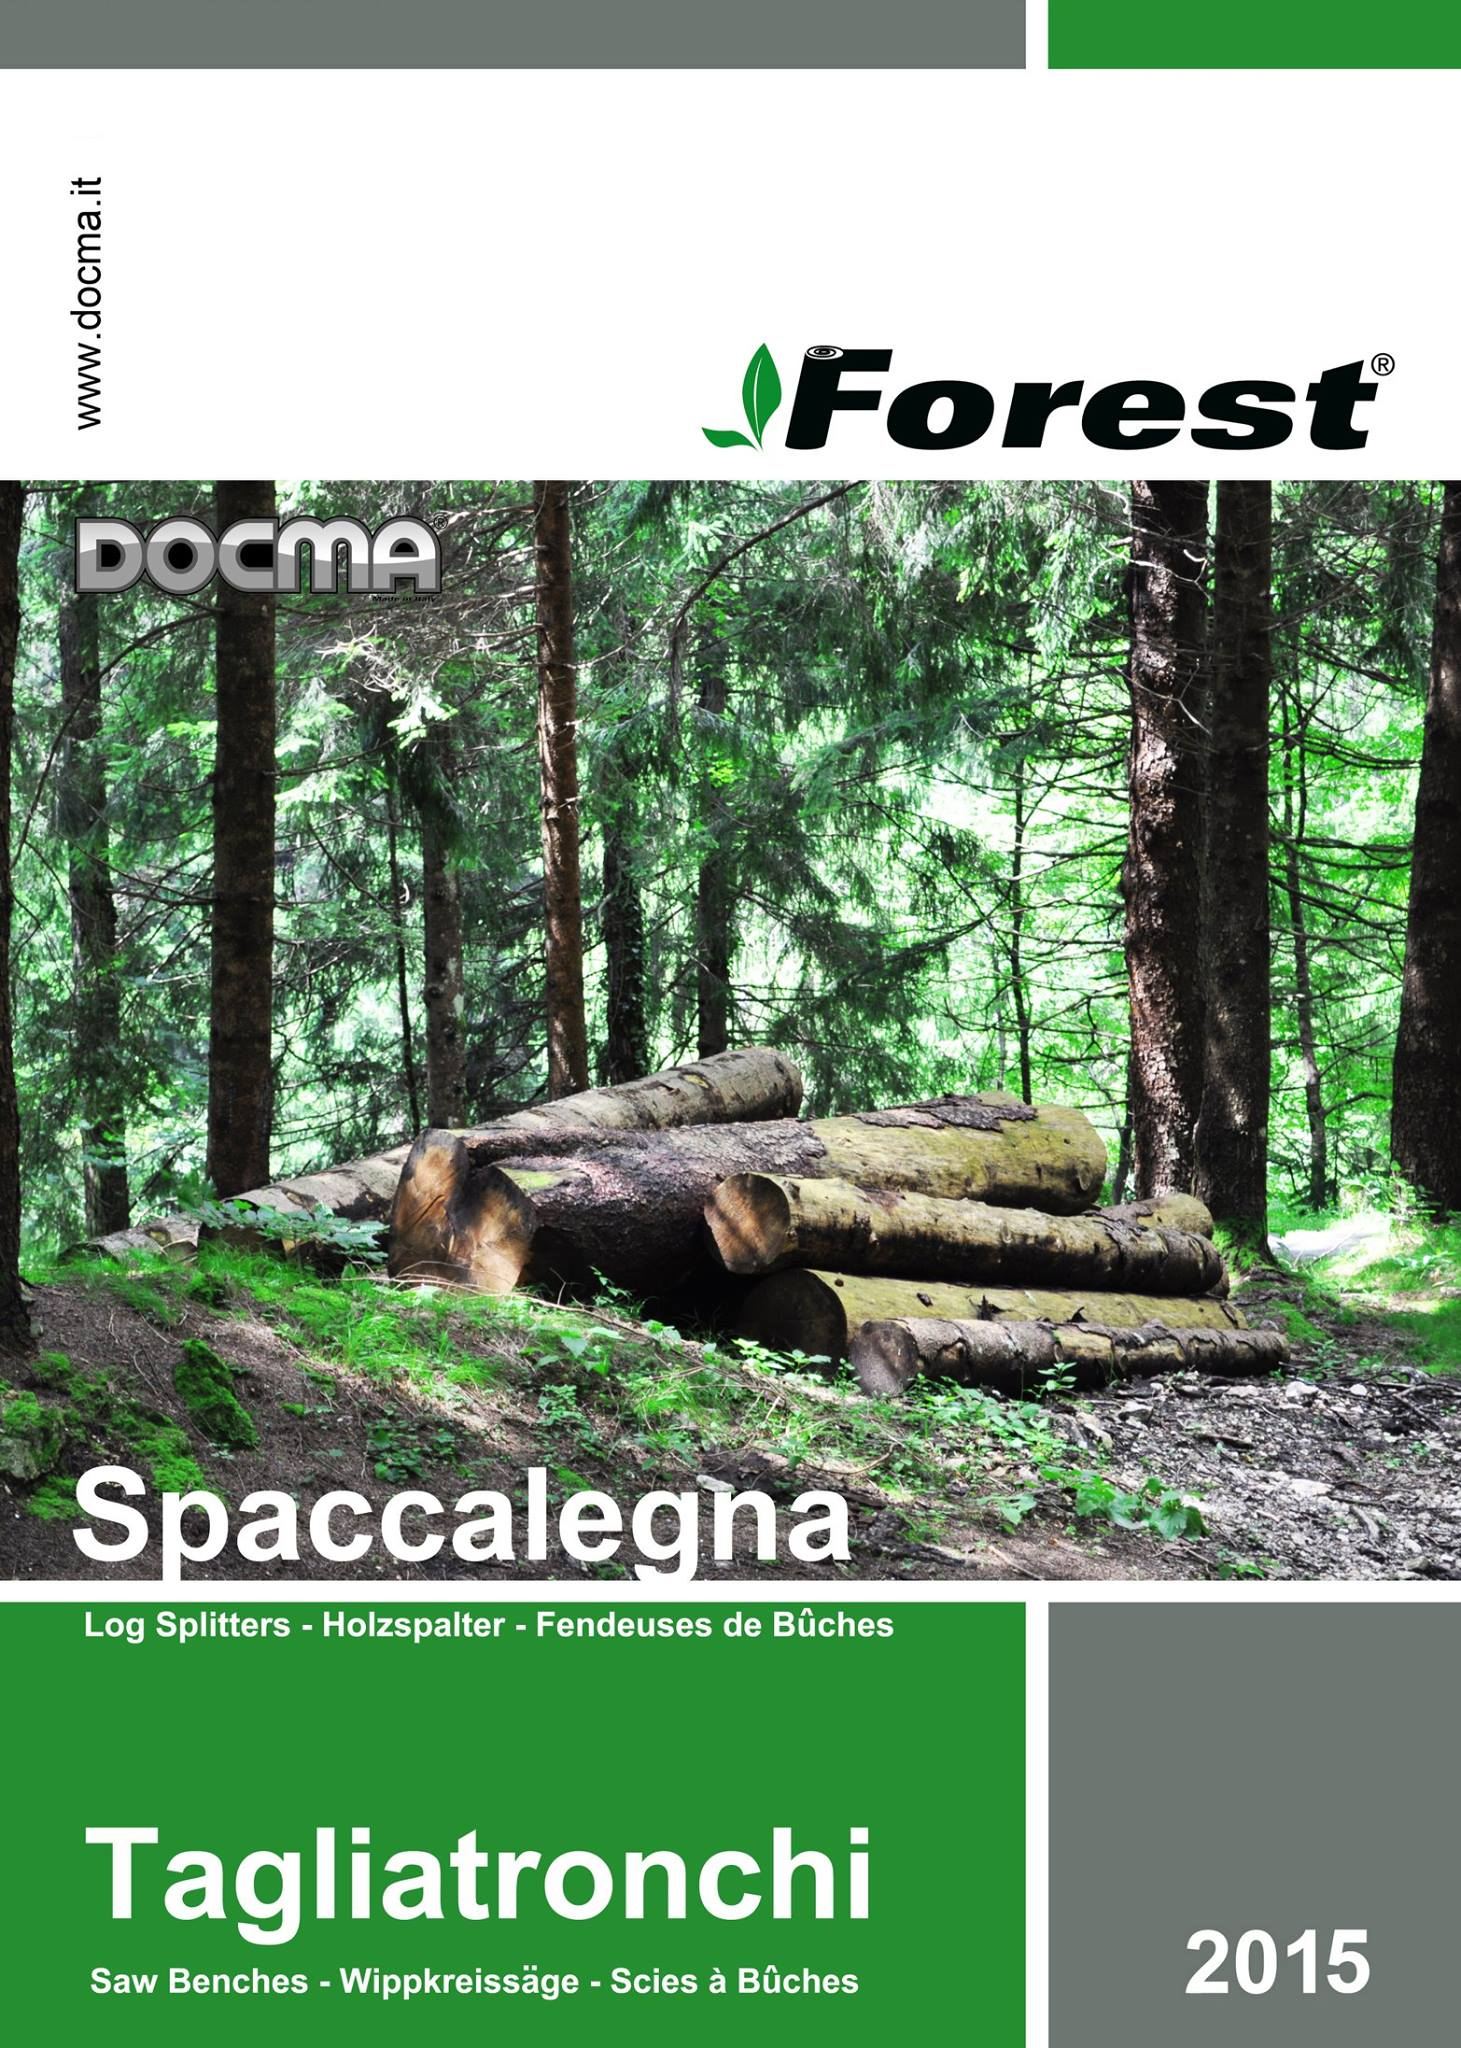 Forêt 2015 - www.docma.it